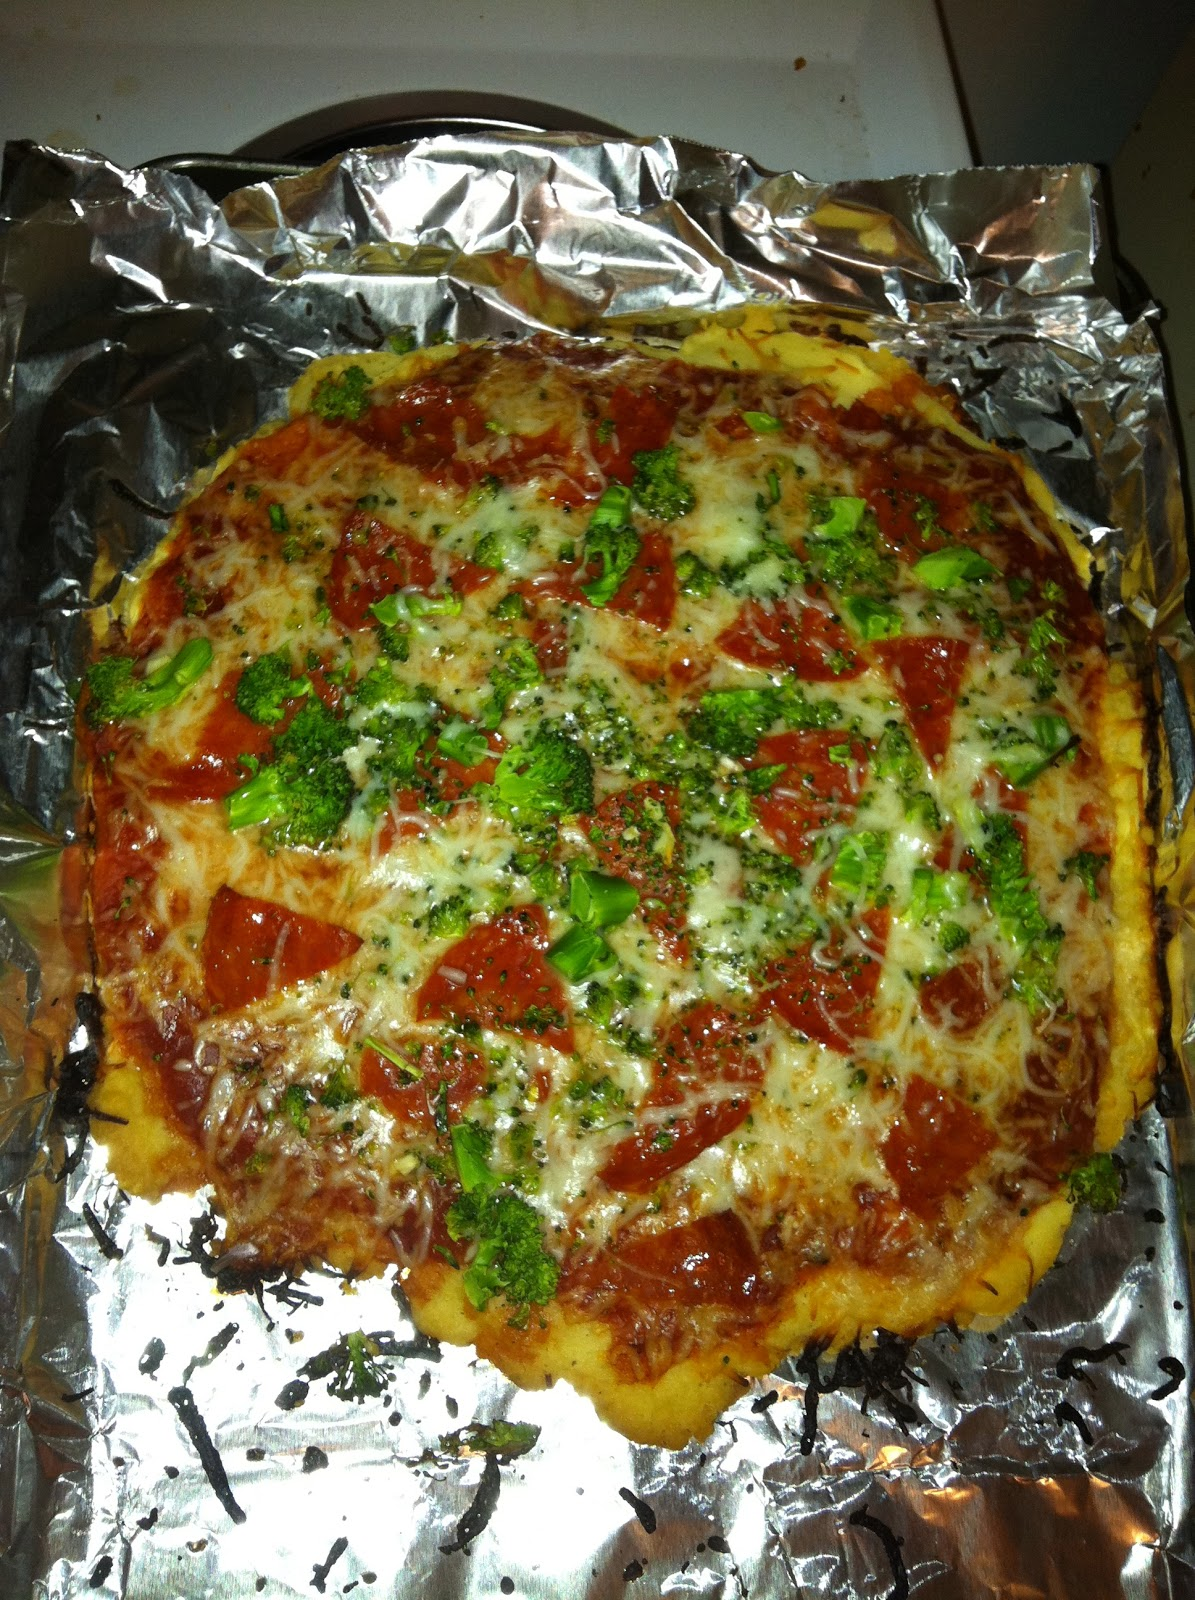 trying the gluten free pizza crust recipe from the bisquick box